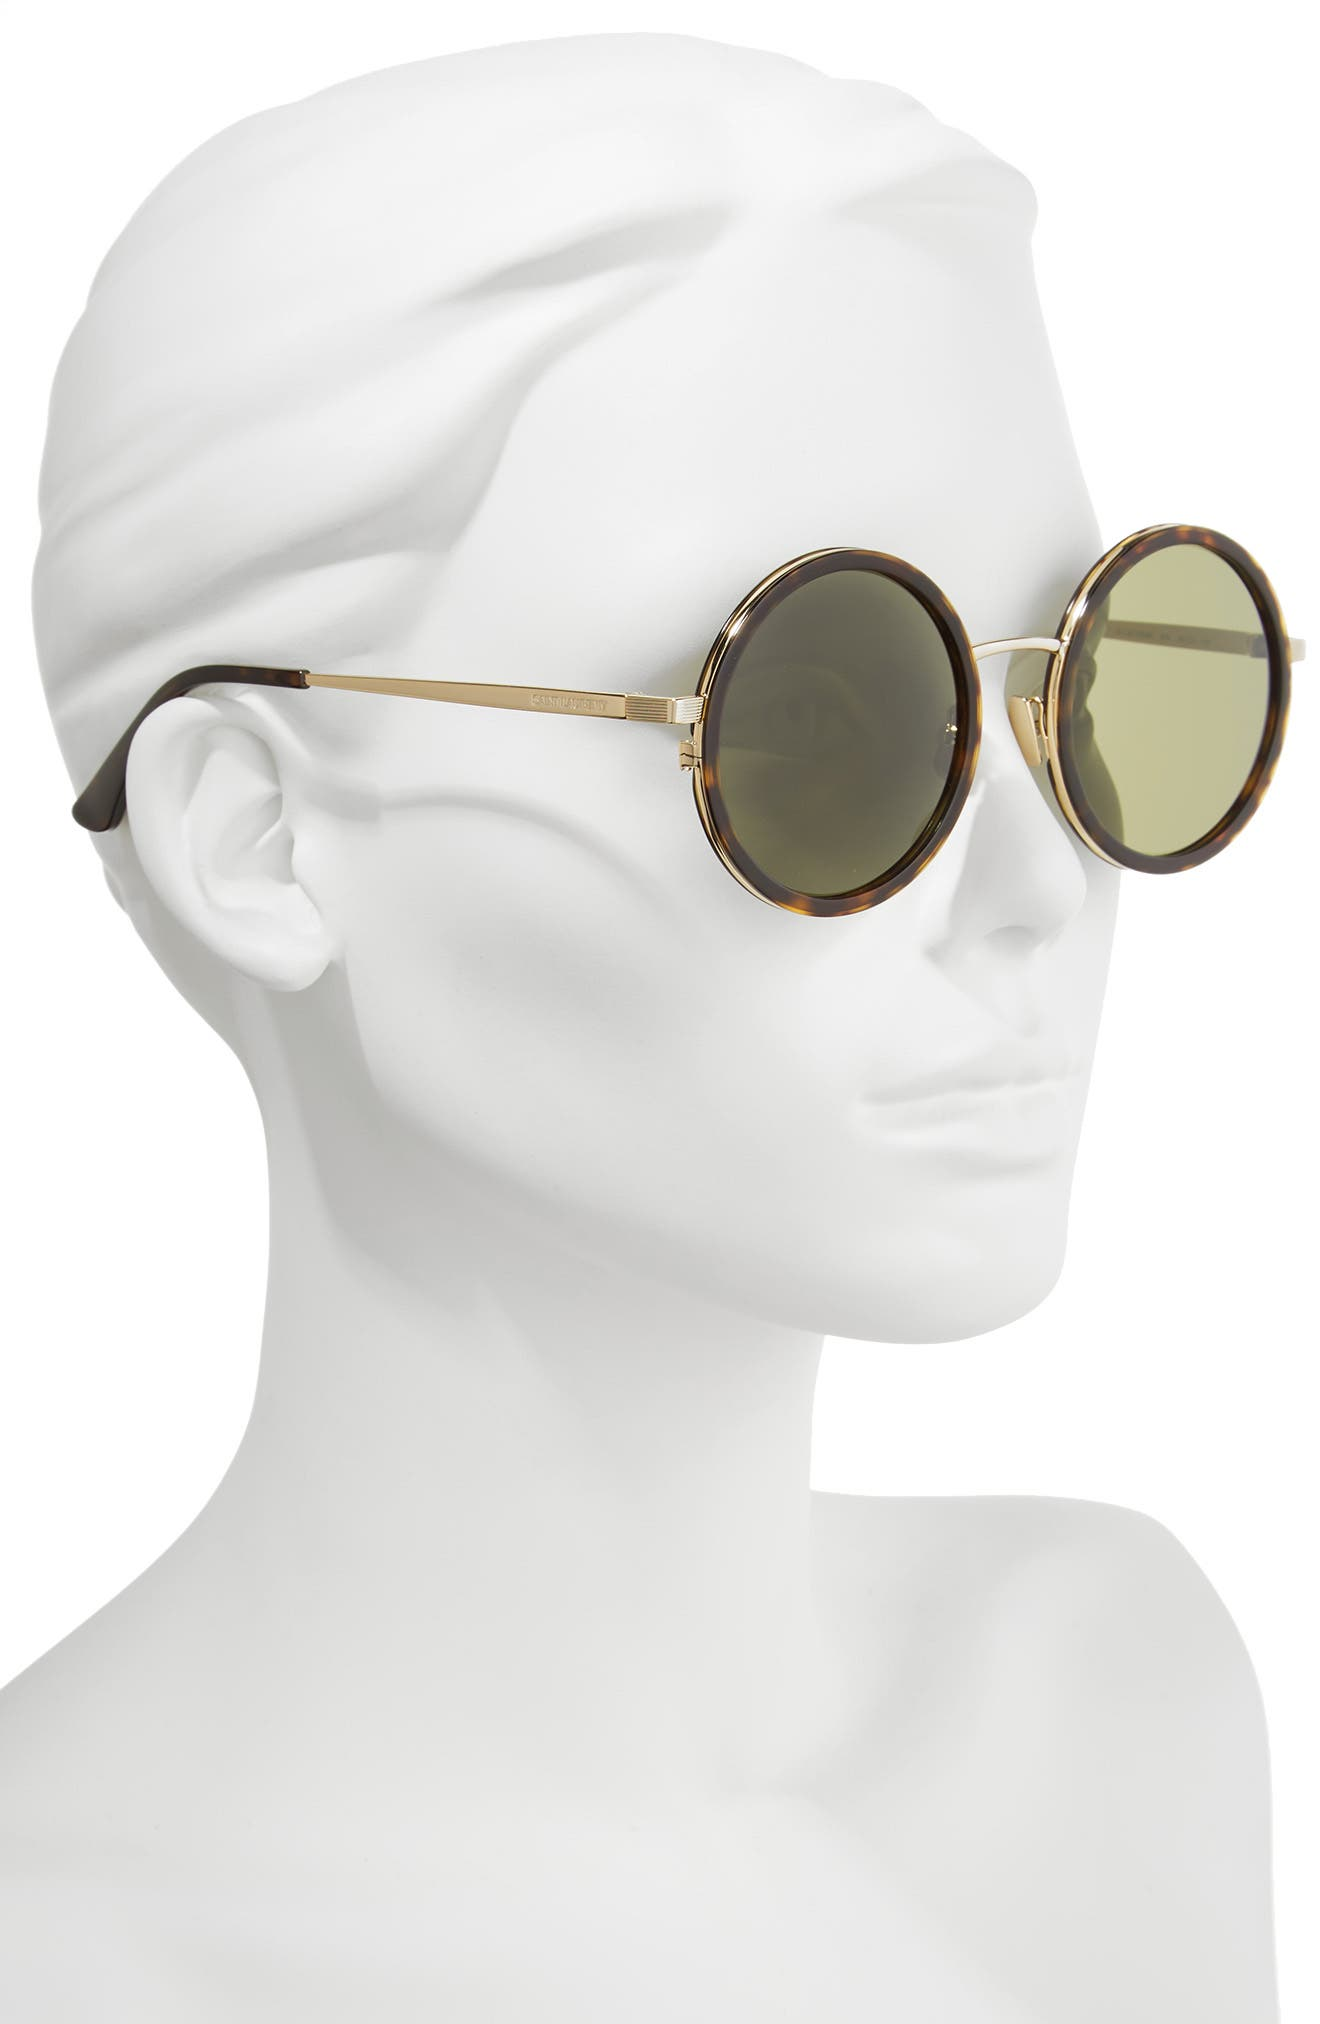 52mm Round Sunglasses,                             Alternate thumbnail 2, color,                             Havana